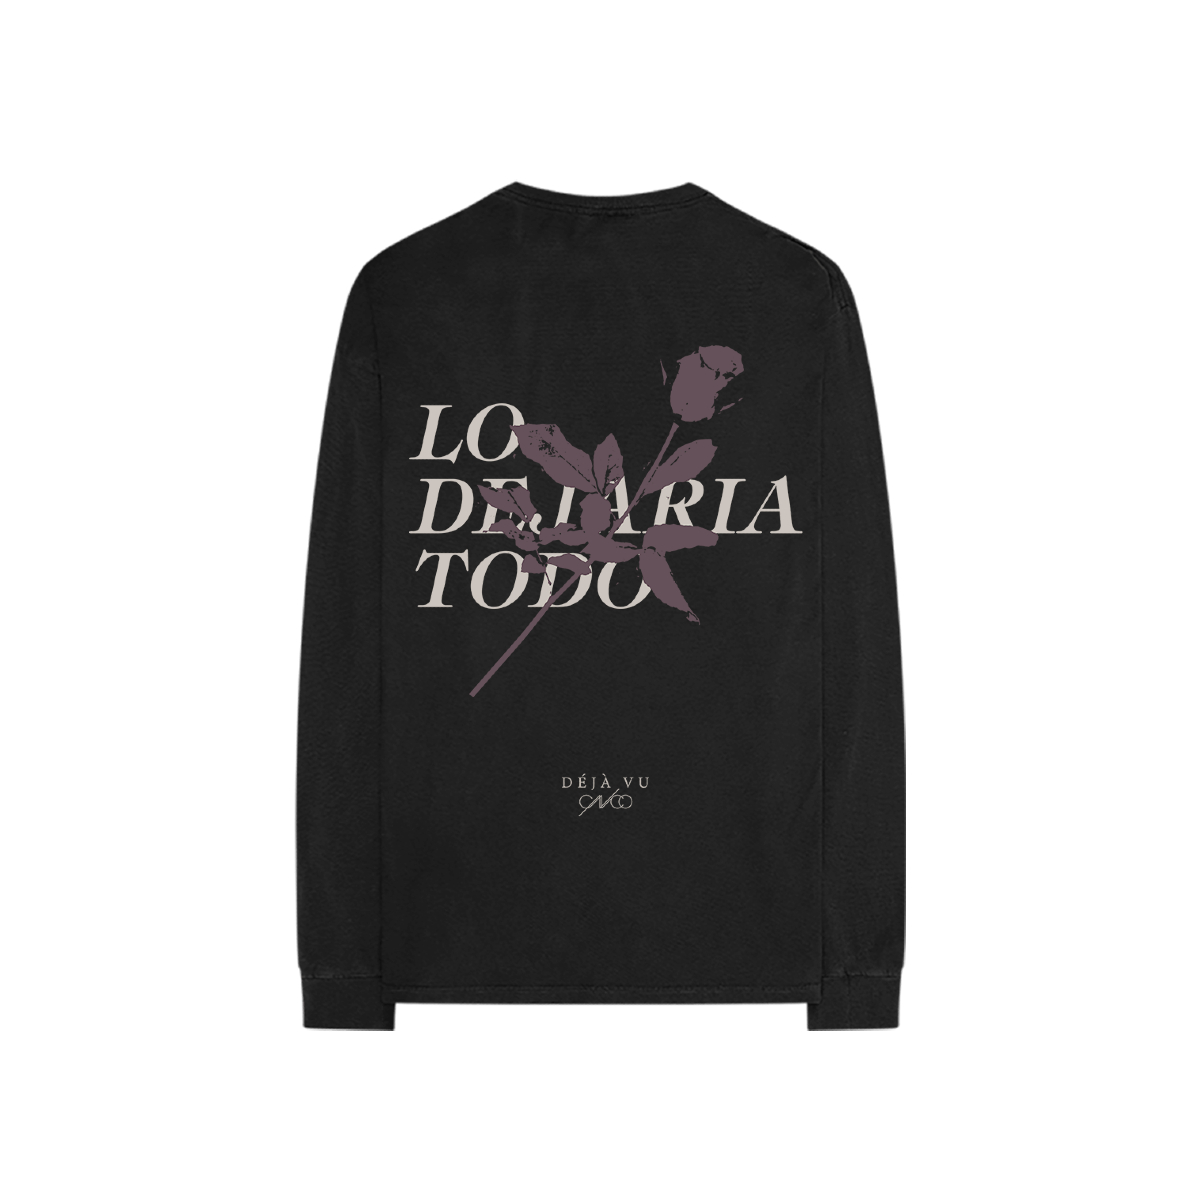 Déjà vu Black Long Sleeve Tee